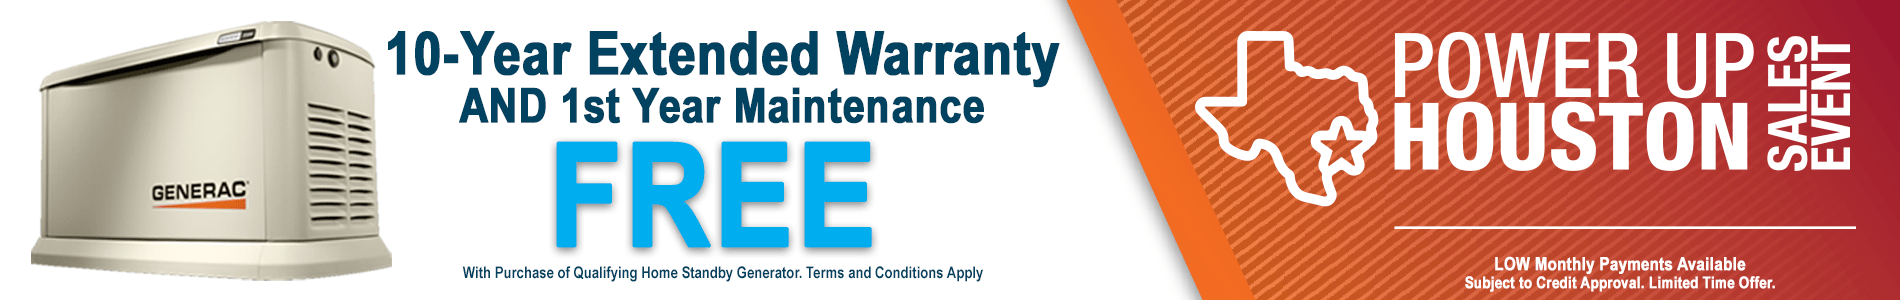 10 year extended warranty and 1st year maintenance free for generator sales event